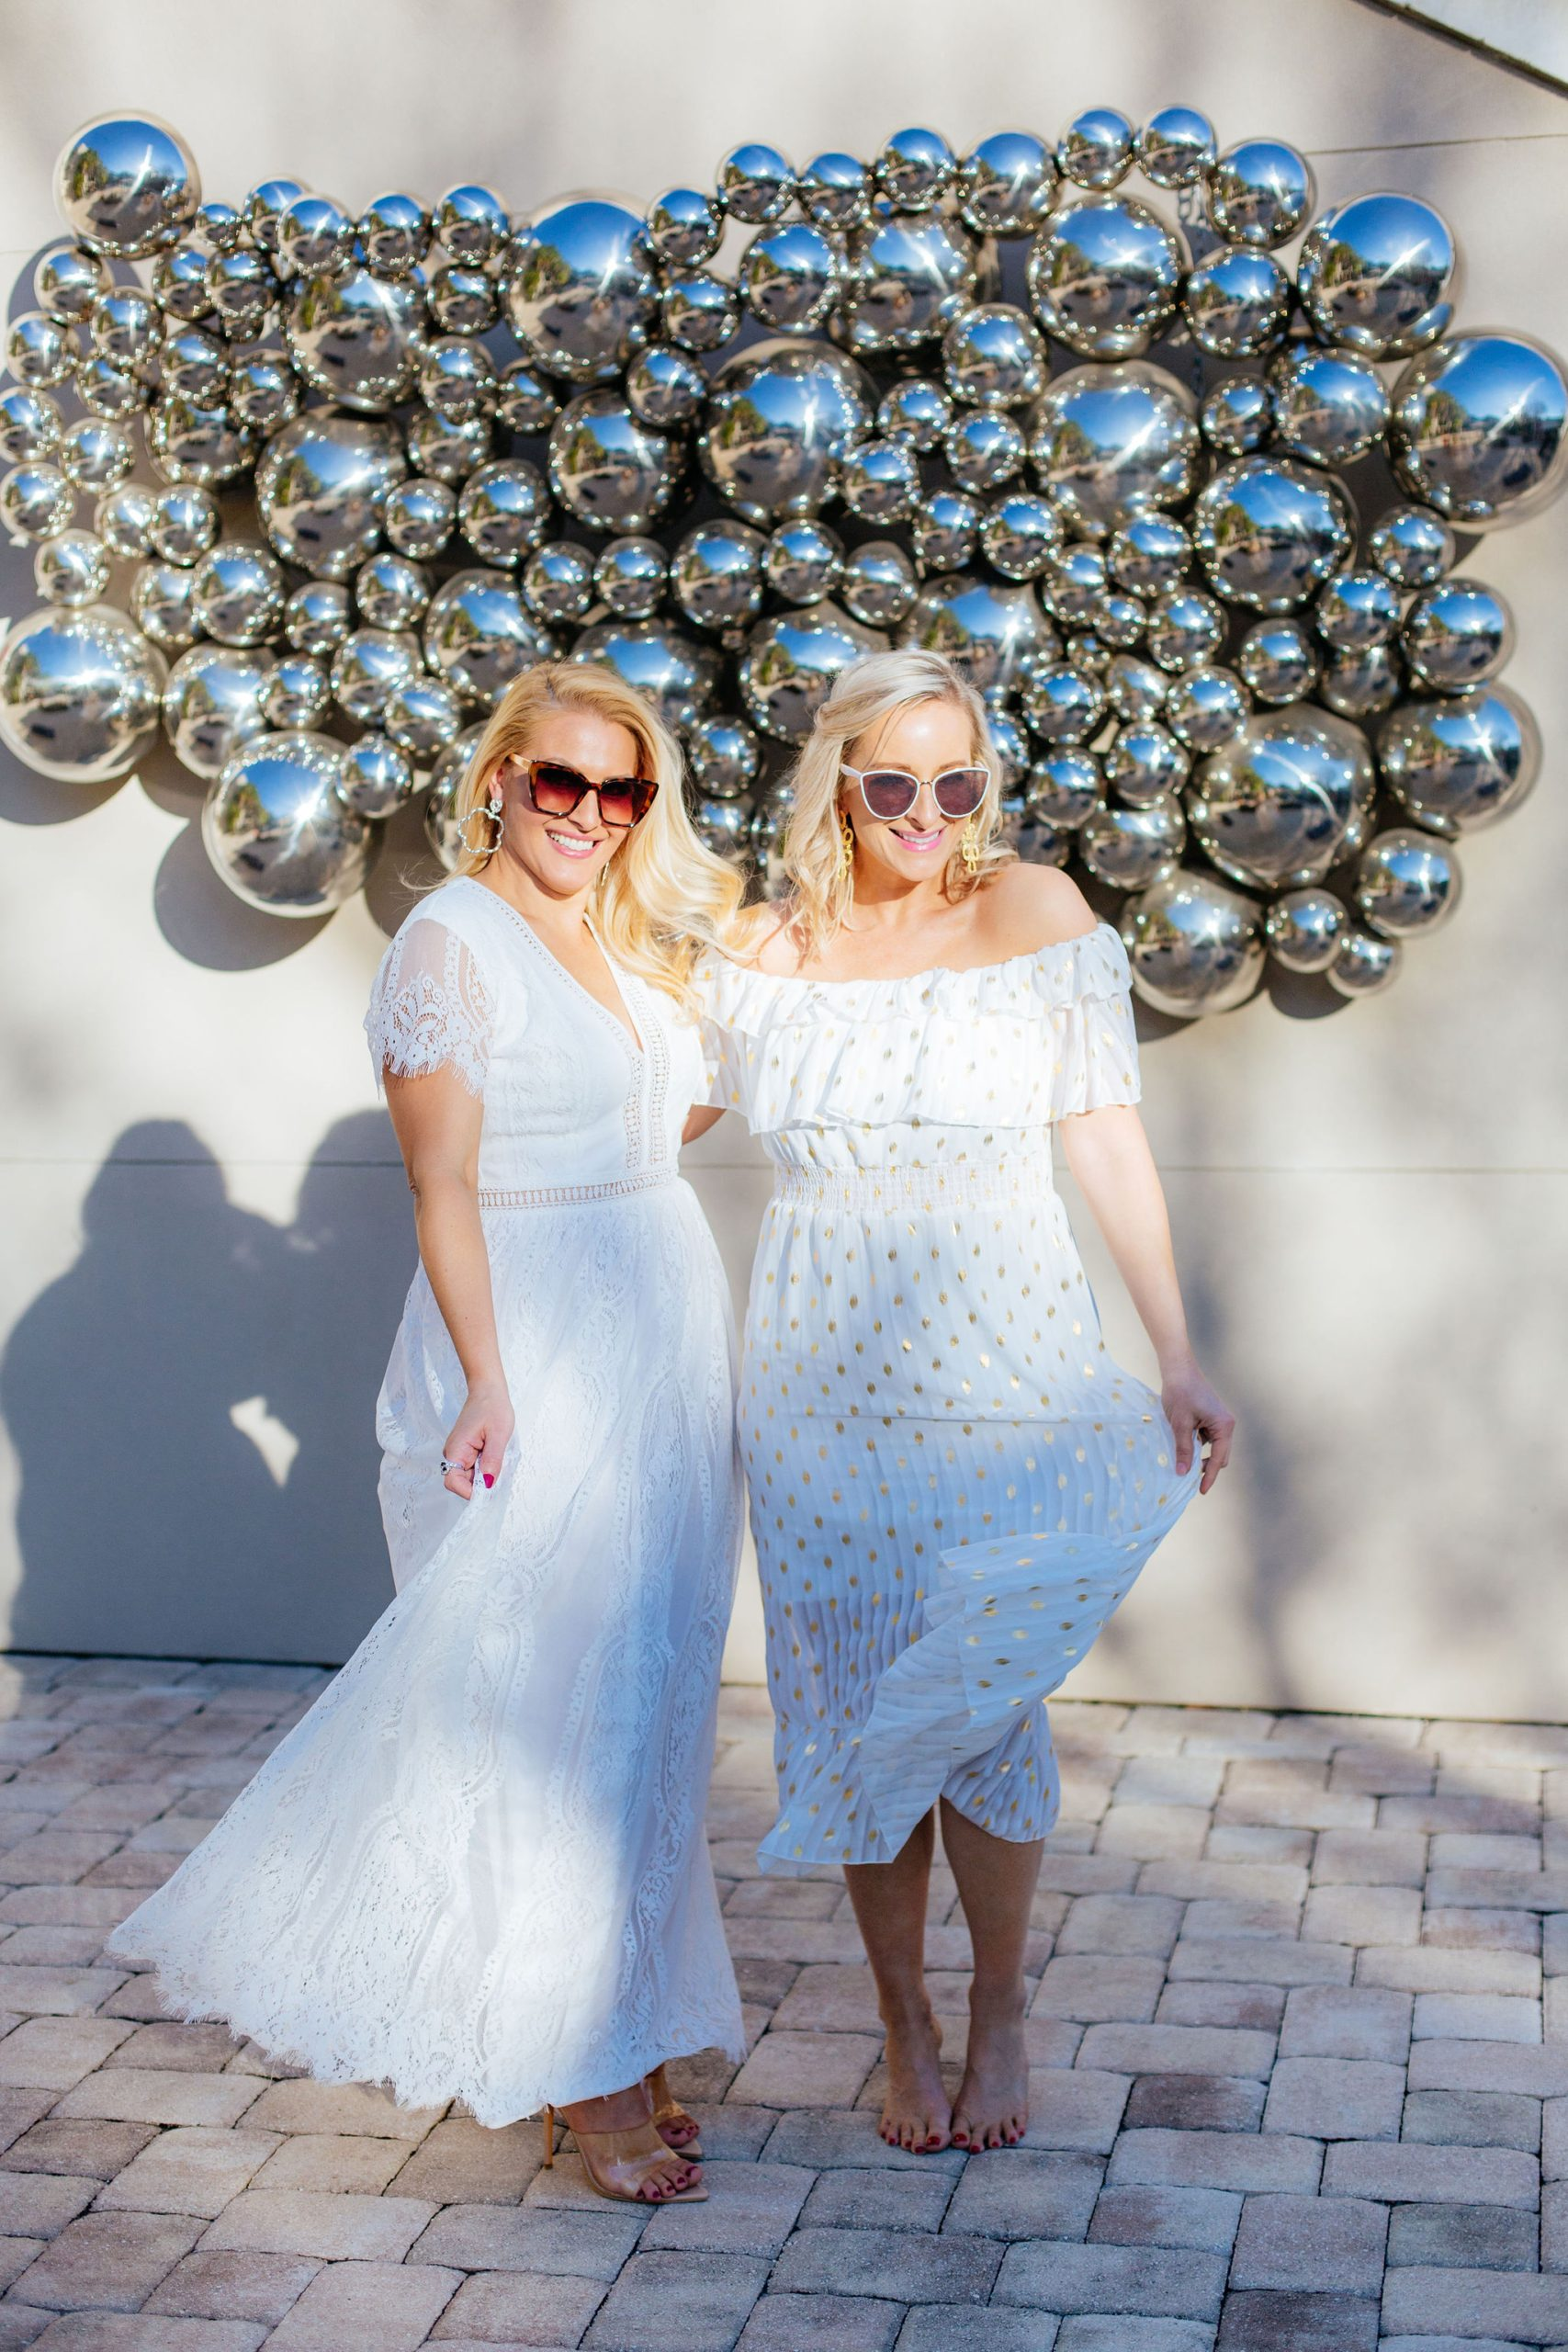 Style Blogger Jenn Truman @jtstjtst11 at the Epicurean Hotel, Autograph Collection poolside and in a bohemian white lace dress with clear heels and sunglasses on. She's also wearing silver bamboo Lisi Lerch earrings